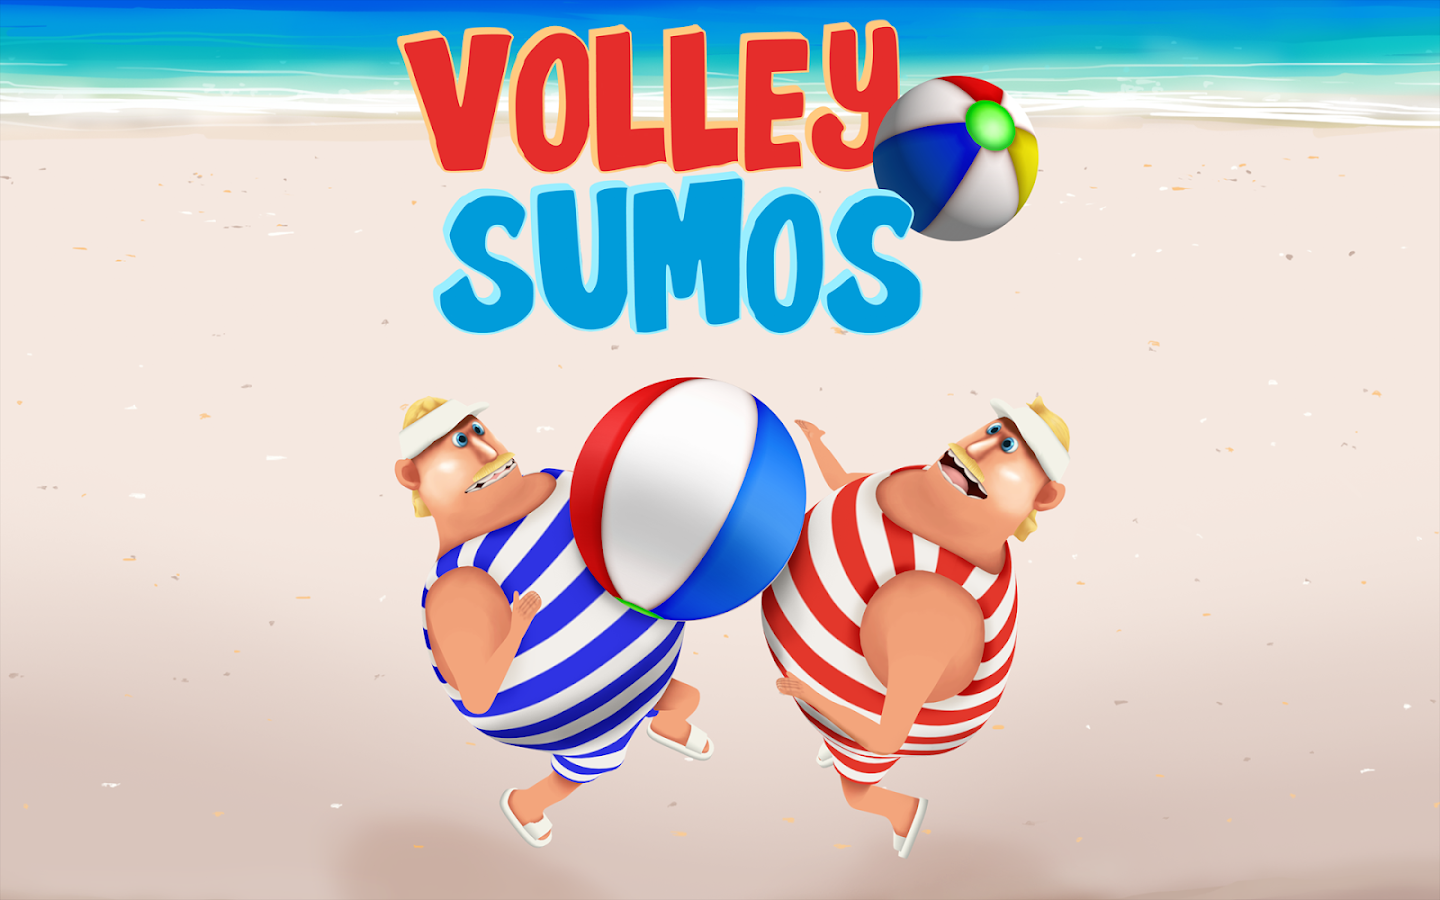 Volley Sumos - Versus game Screenshot 9